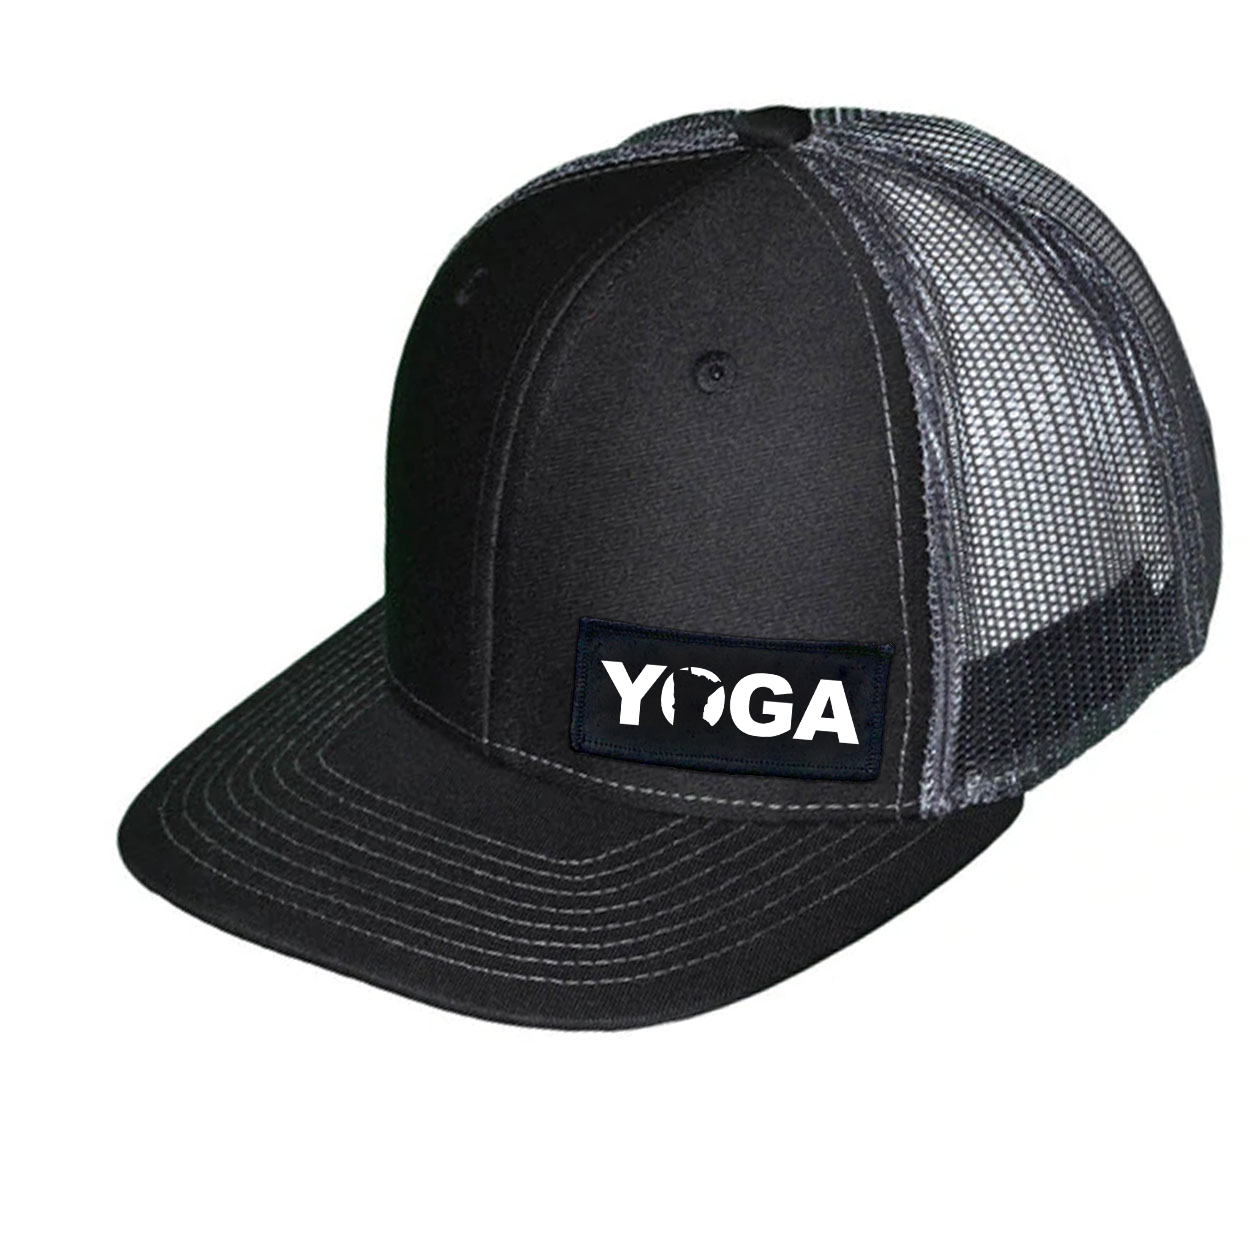 Yoga Minnesota Night Out Woven Patch Snapback Trucker Hat Black/Dark Gray (White Logo)